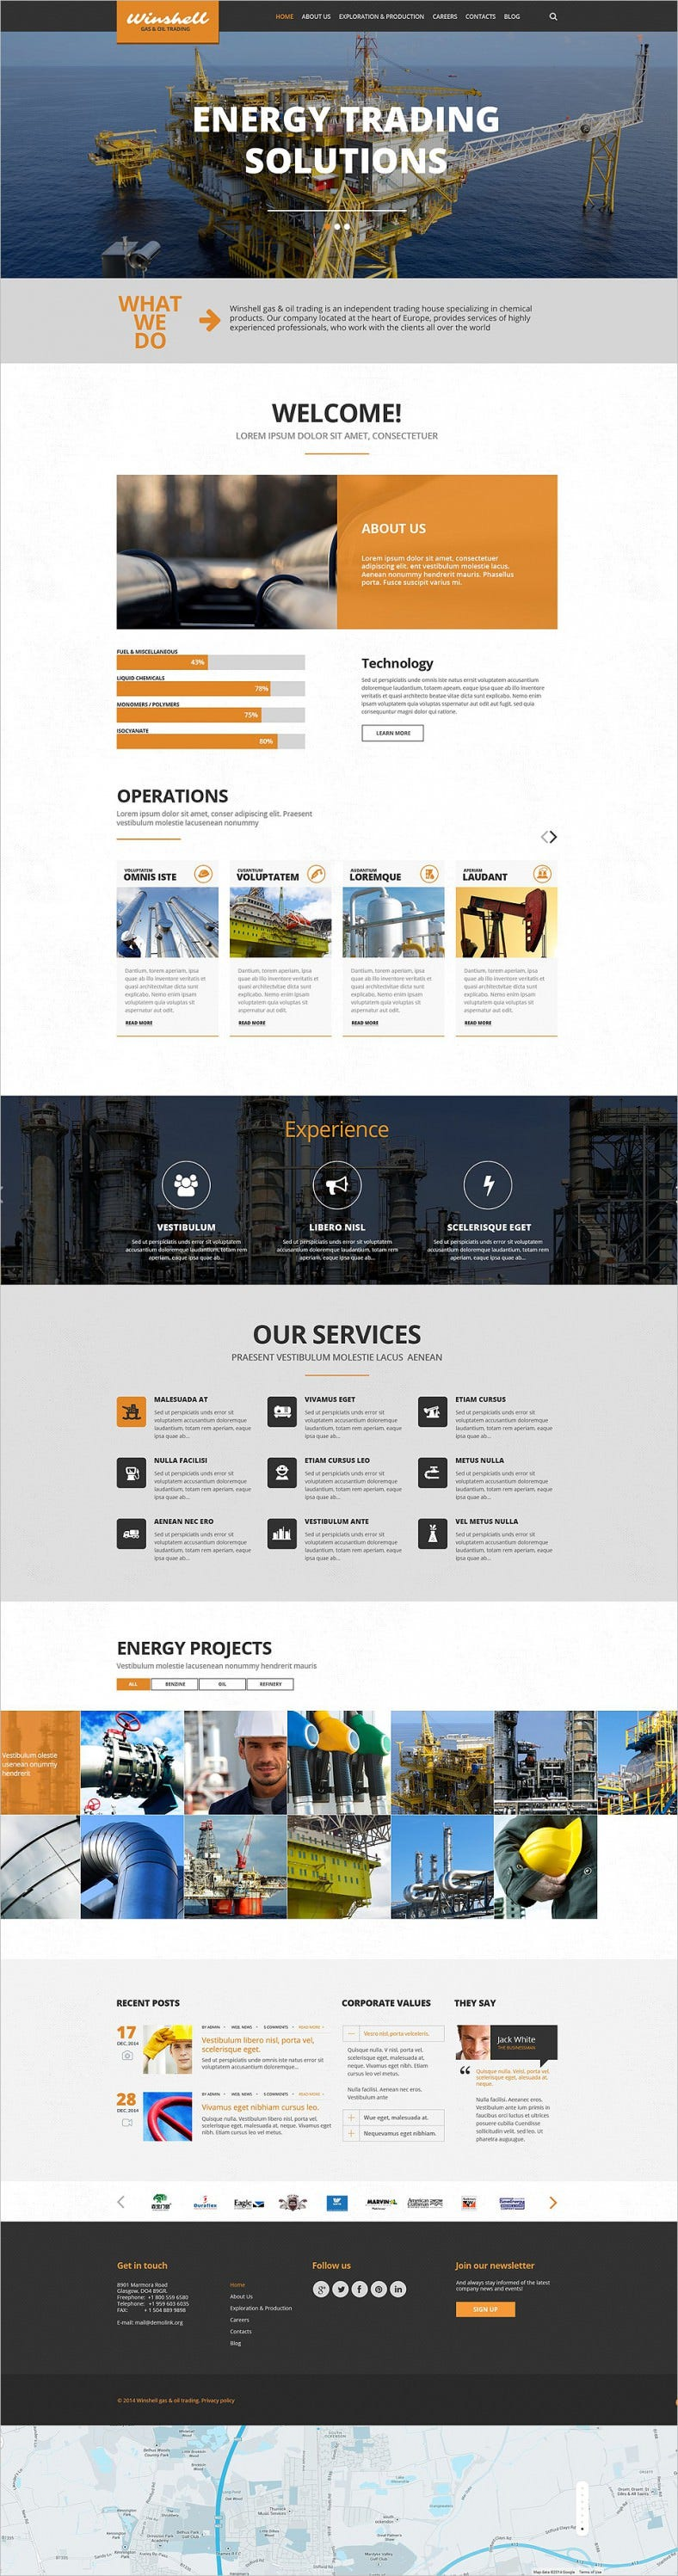 Parallax Scrolling Wp Theme for Gas and Oil Trading website